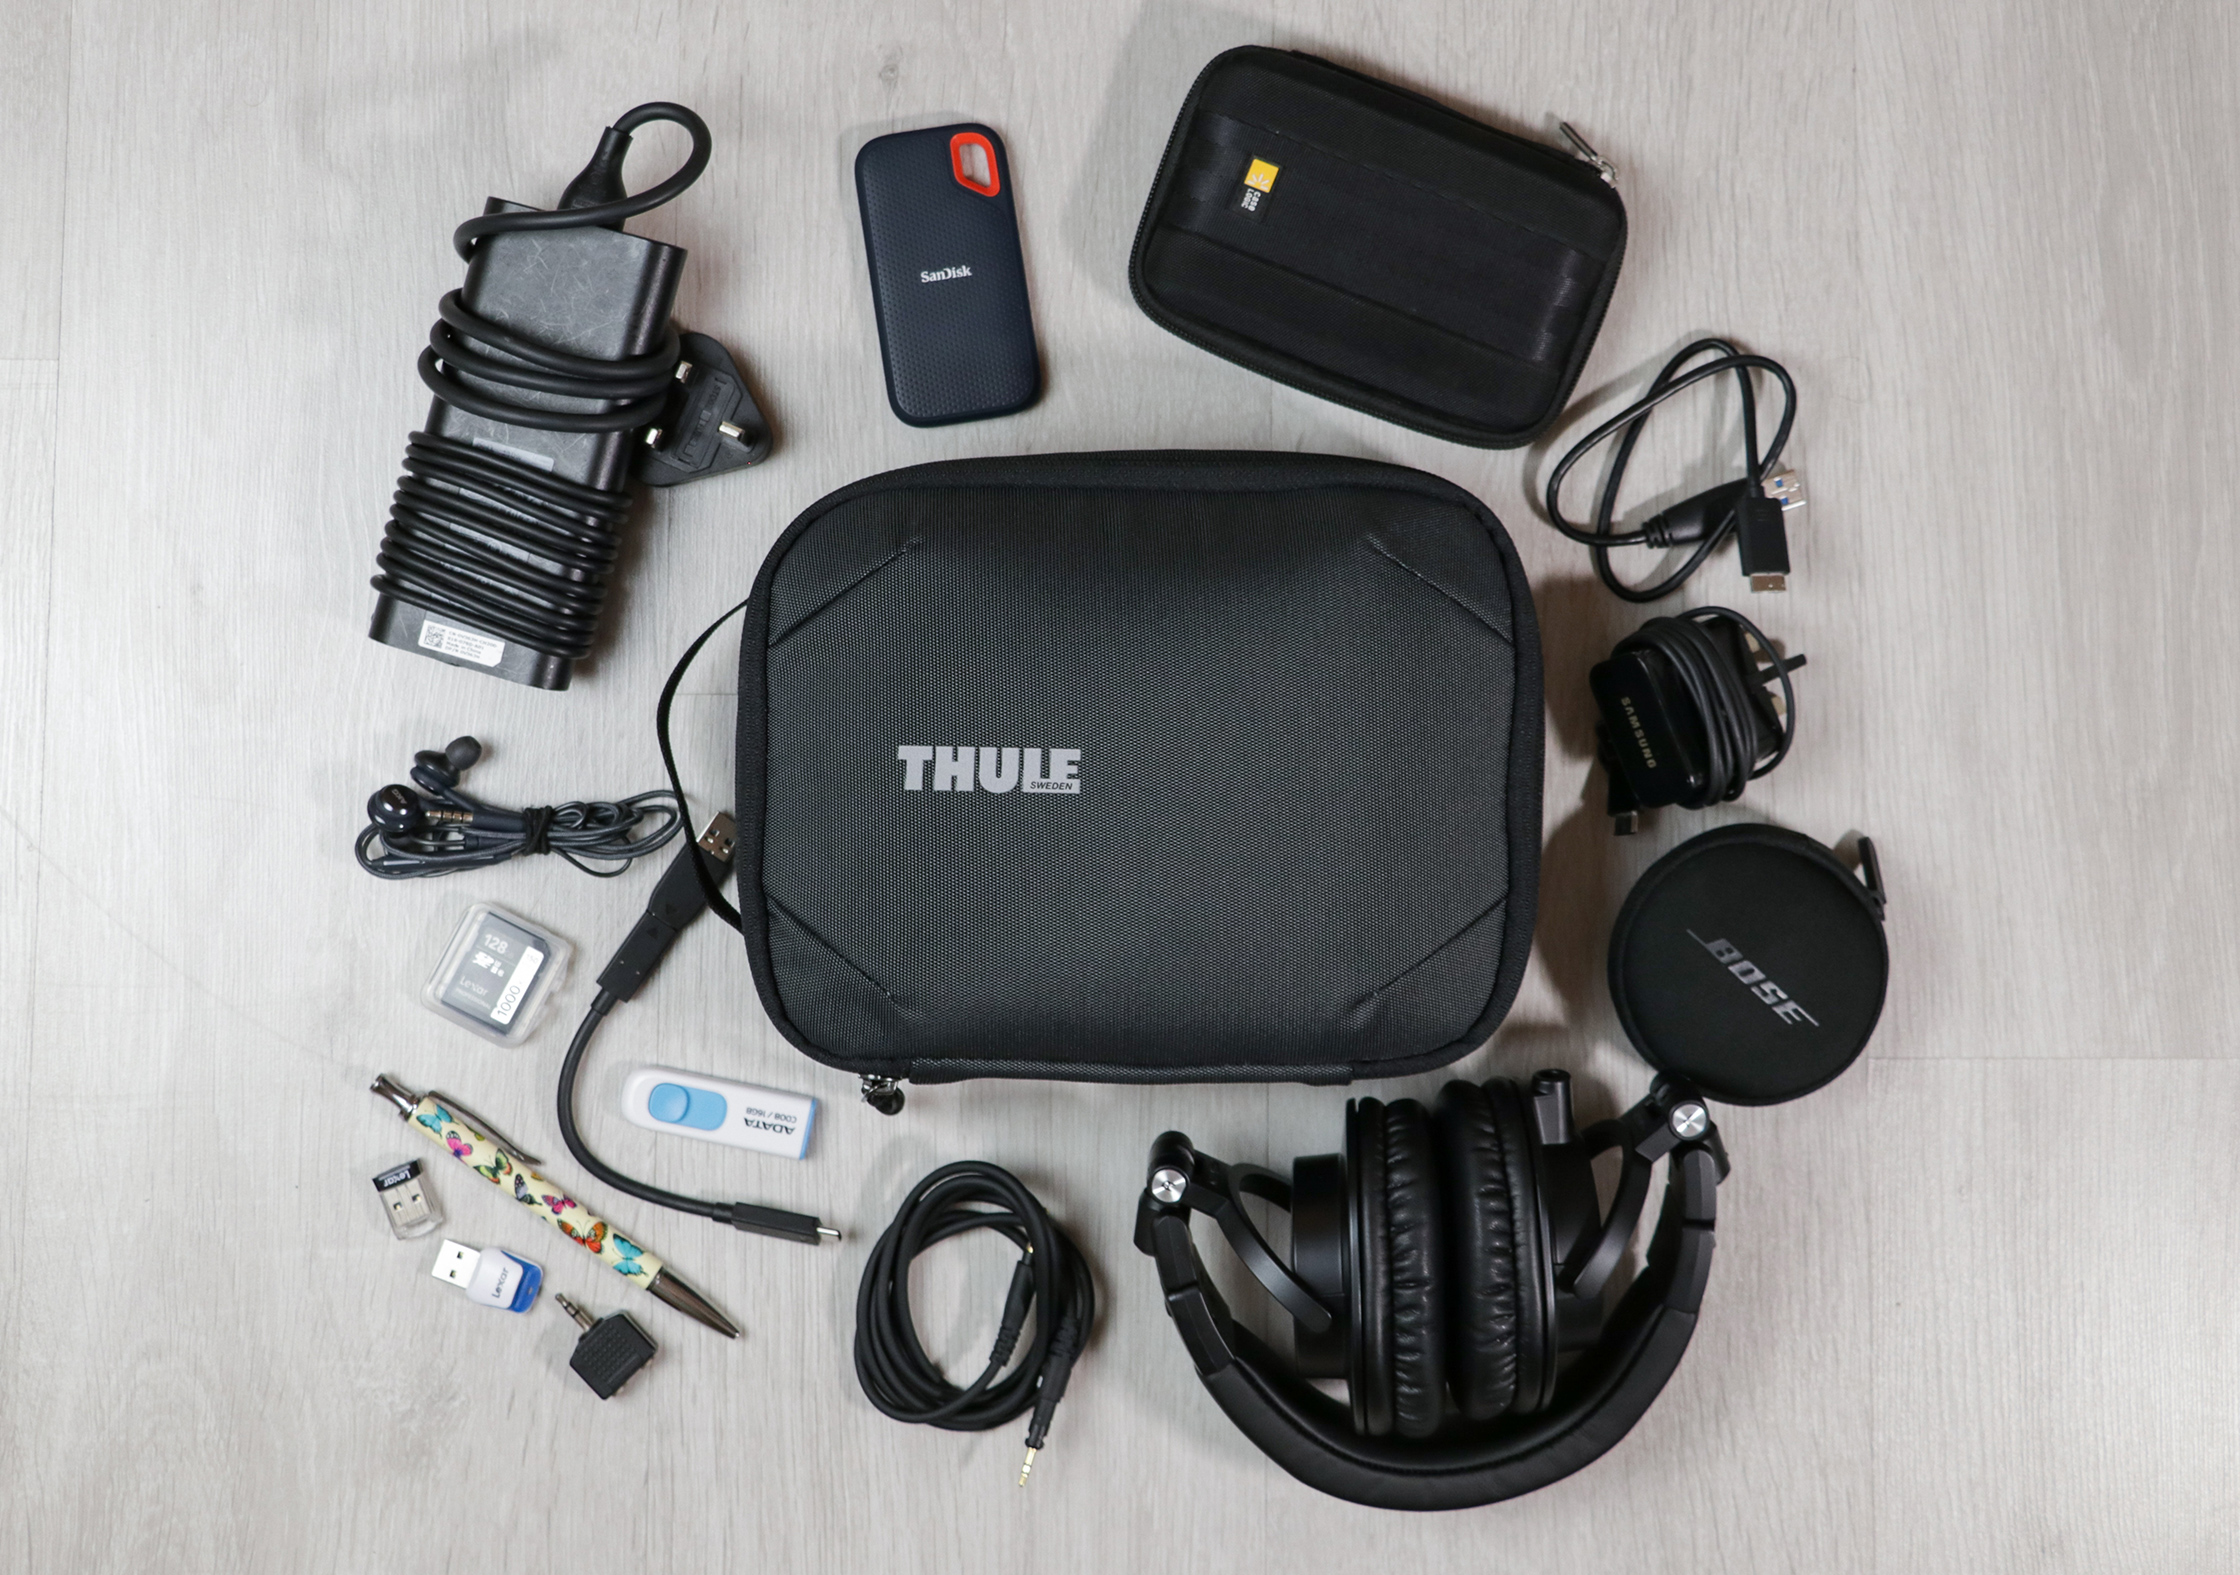 Thule Subterra Powershuttle Plus Flat Lay